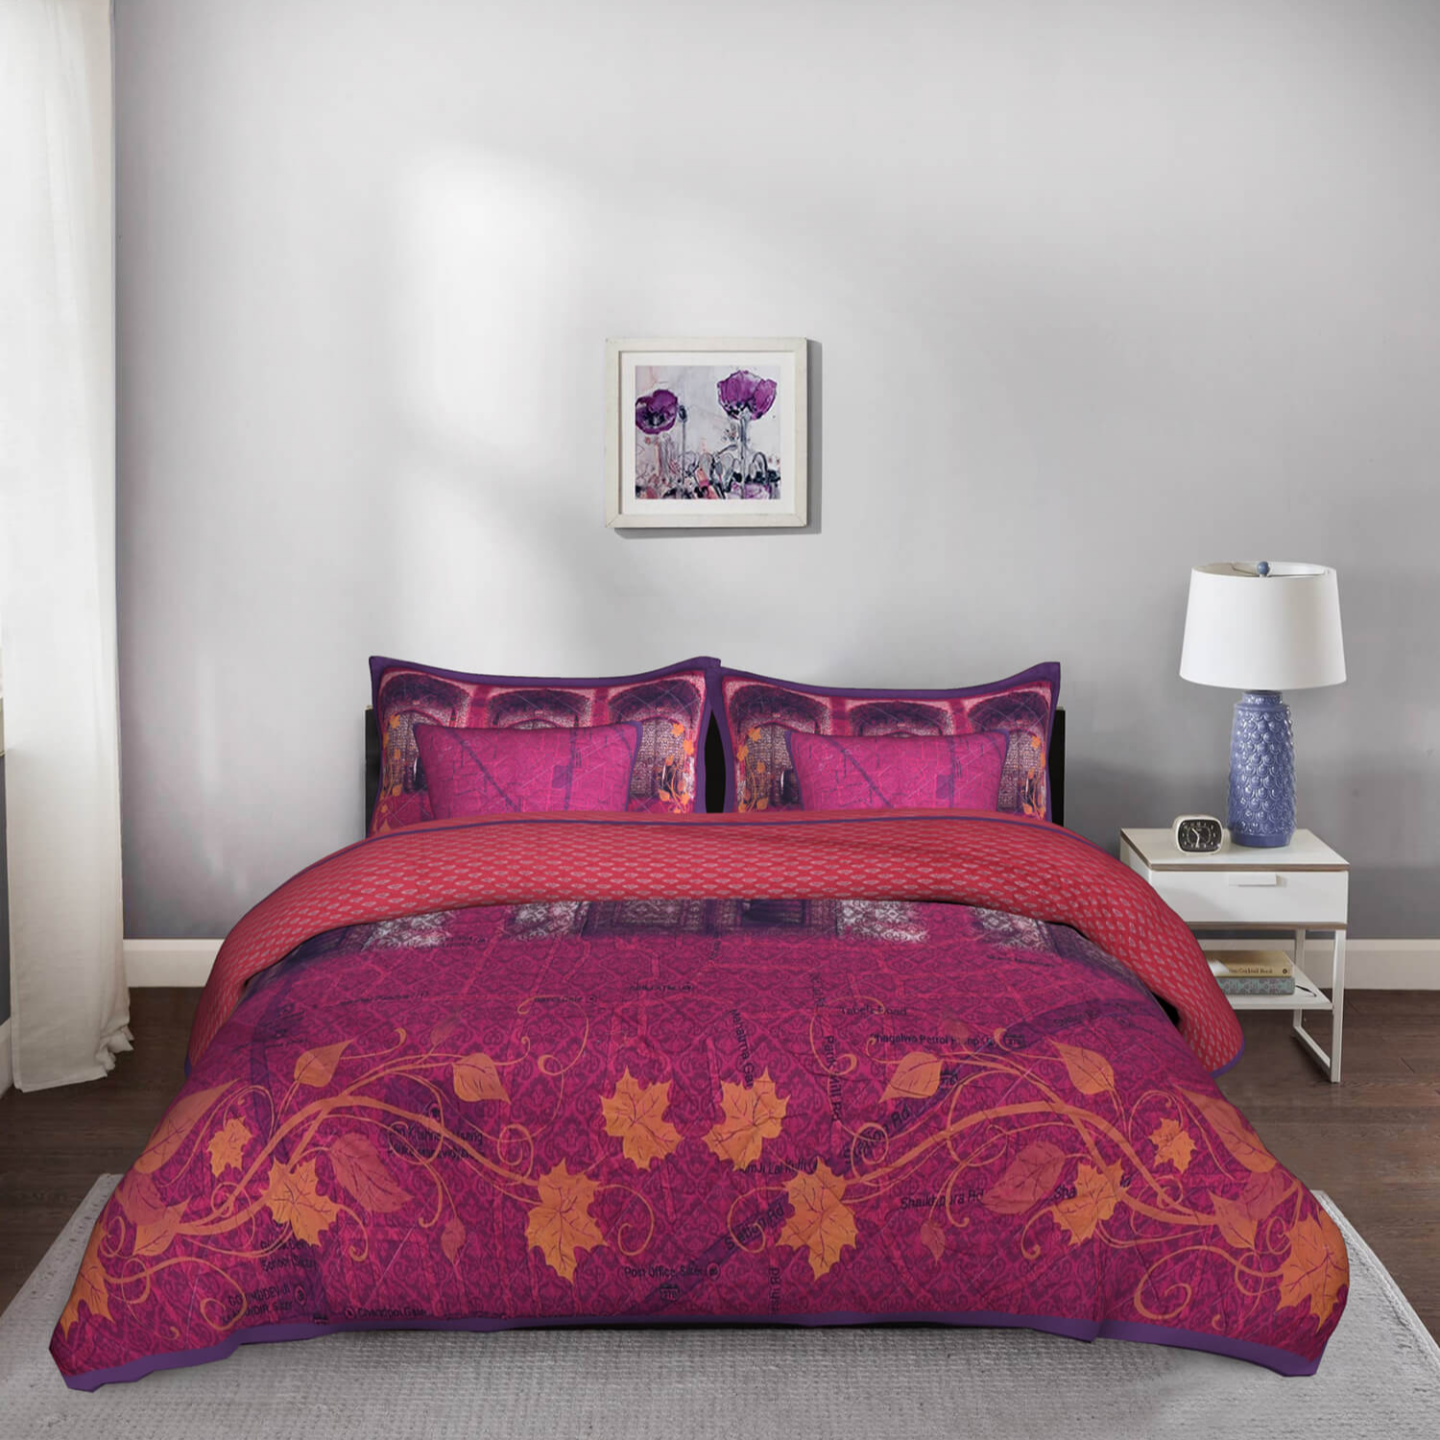 Shekhawati Doorway King Size Cotton Quilted Purple Bedspread